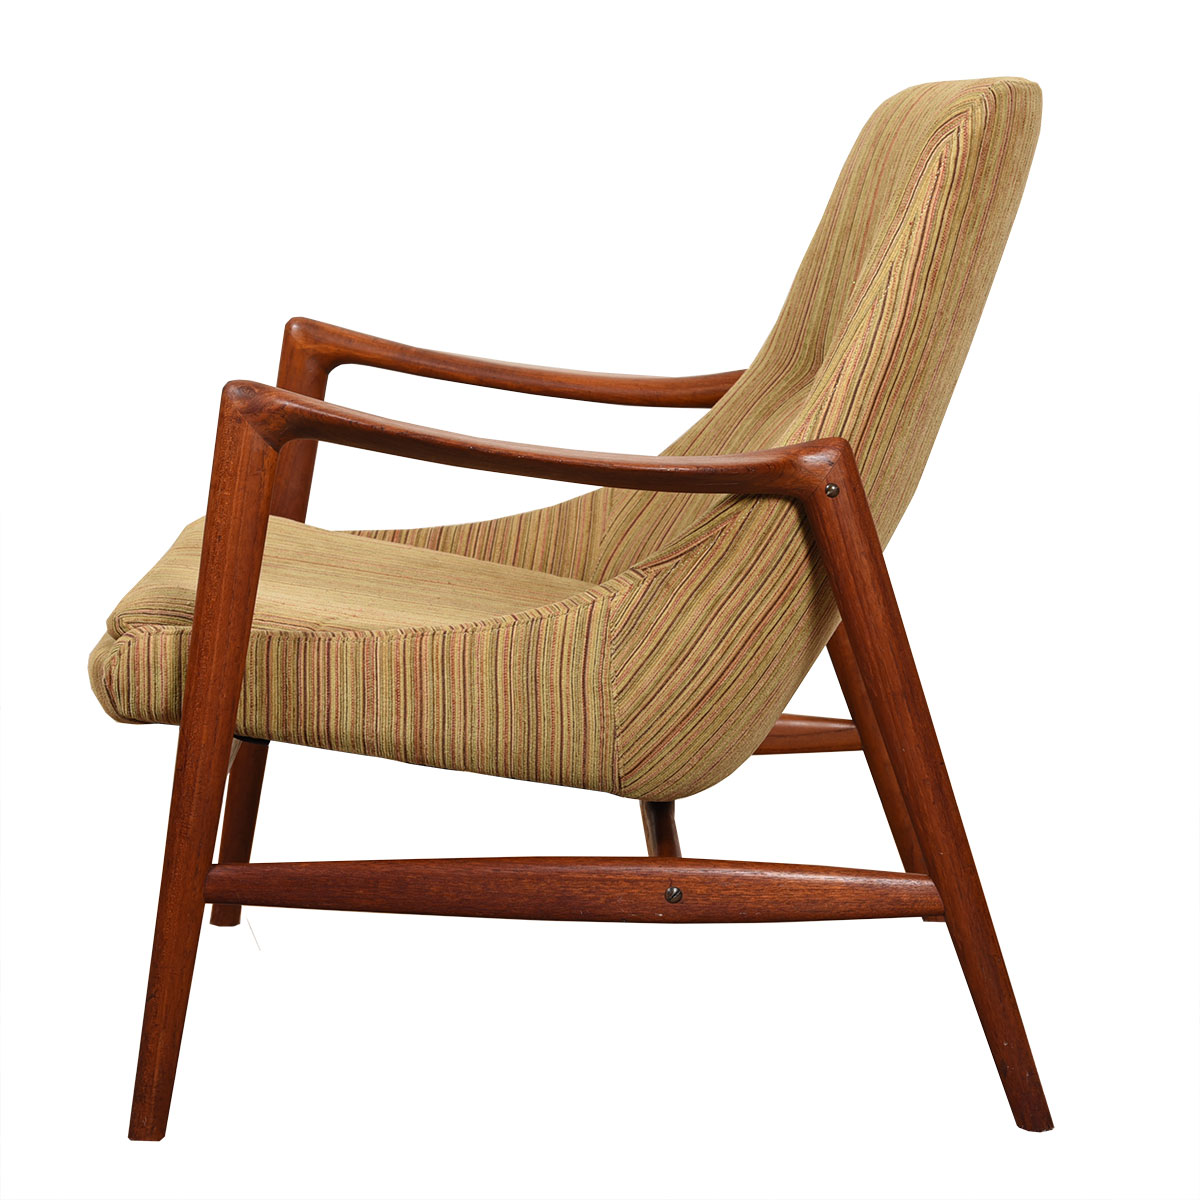 Sculpted Danish Modern Teak Accent Chair